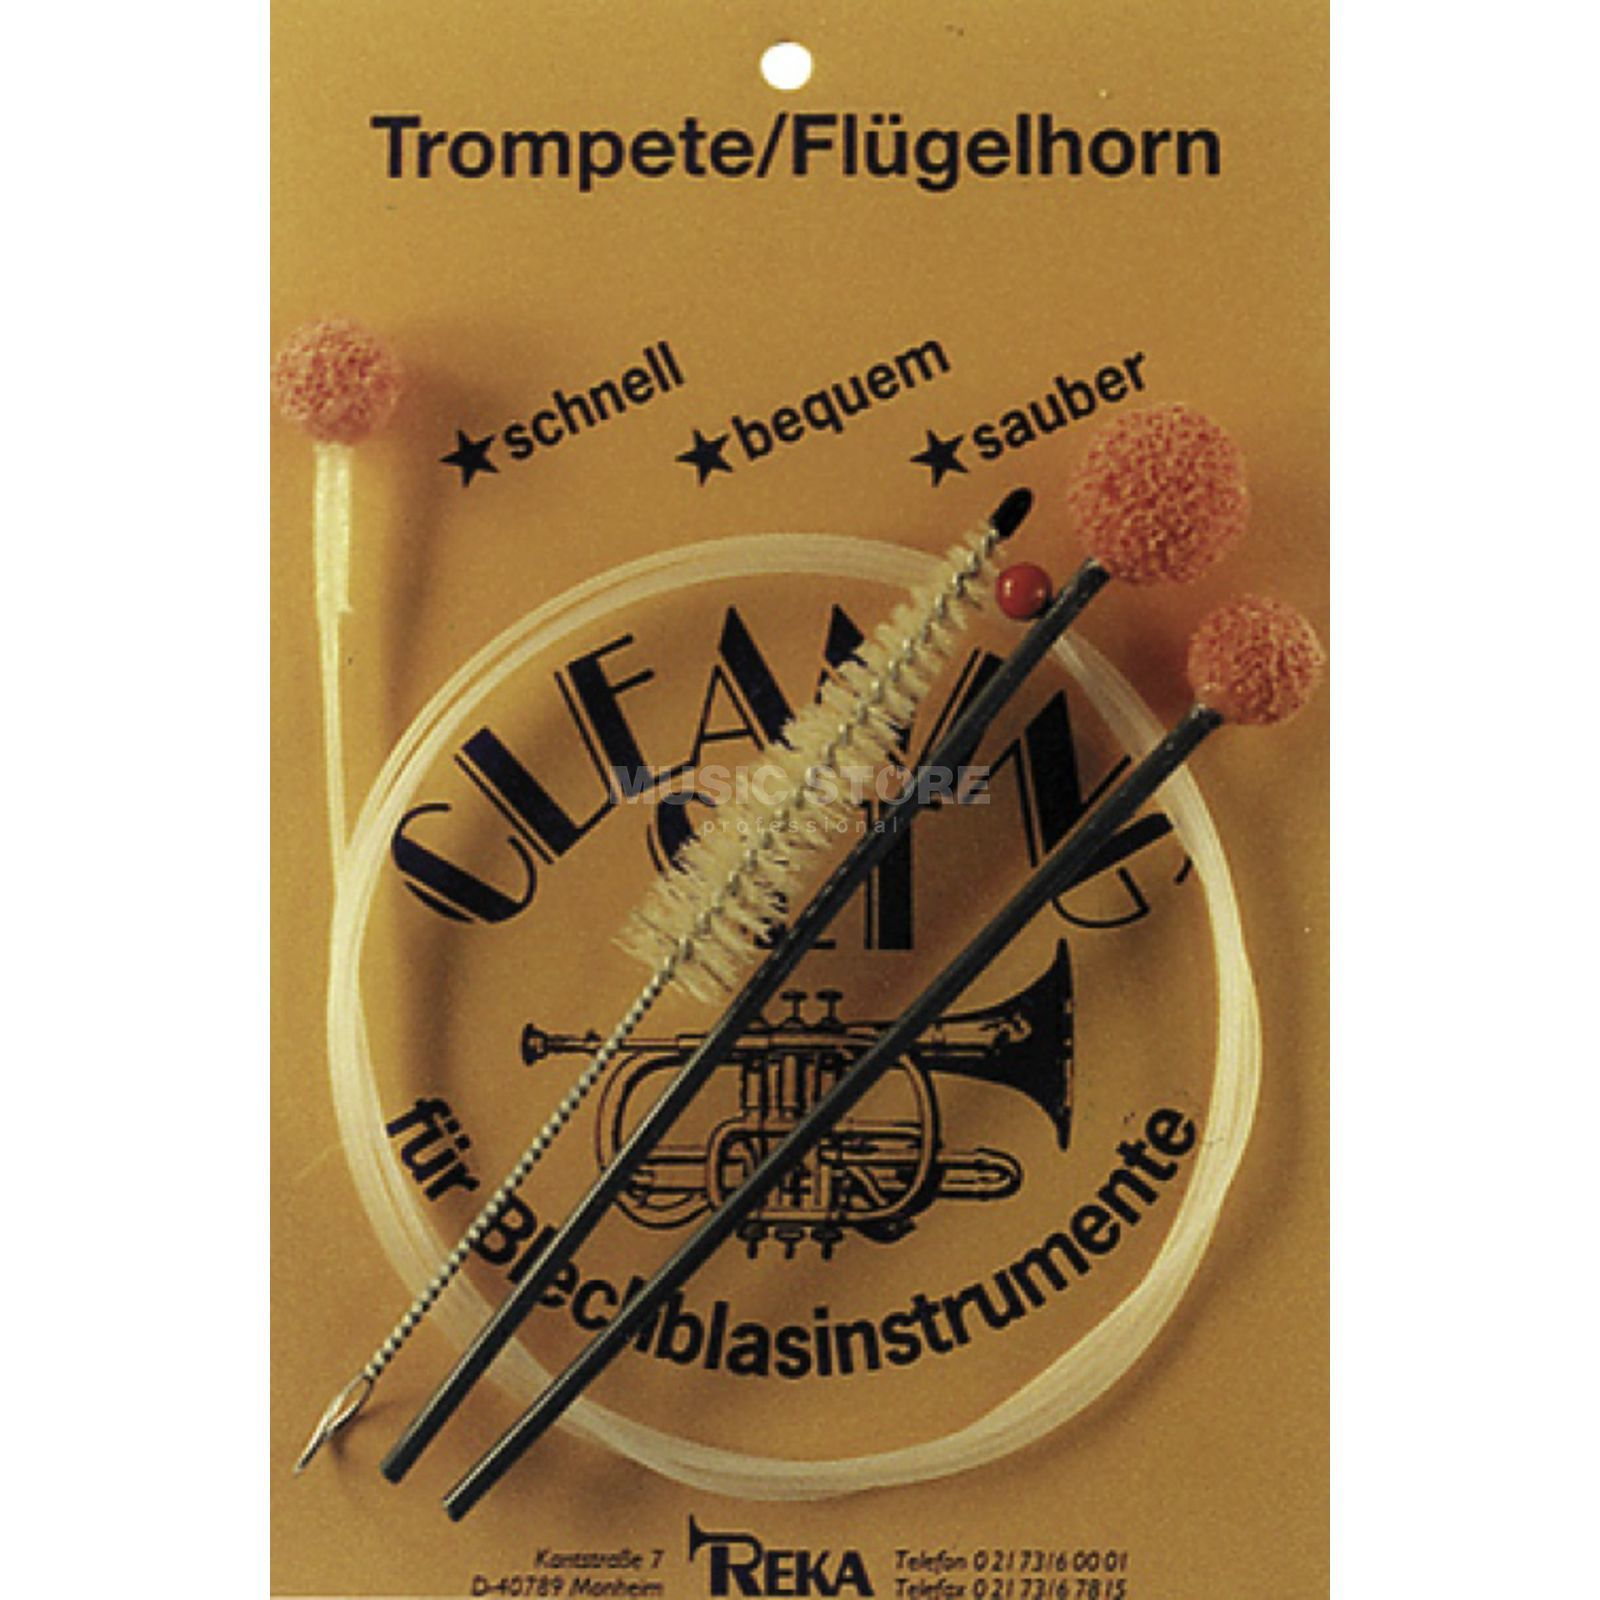 REKA Cleaning Set for Trumpet/Flugelhorn Image du produit